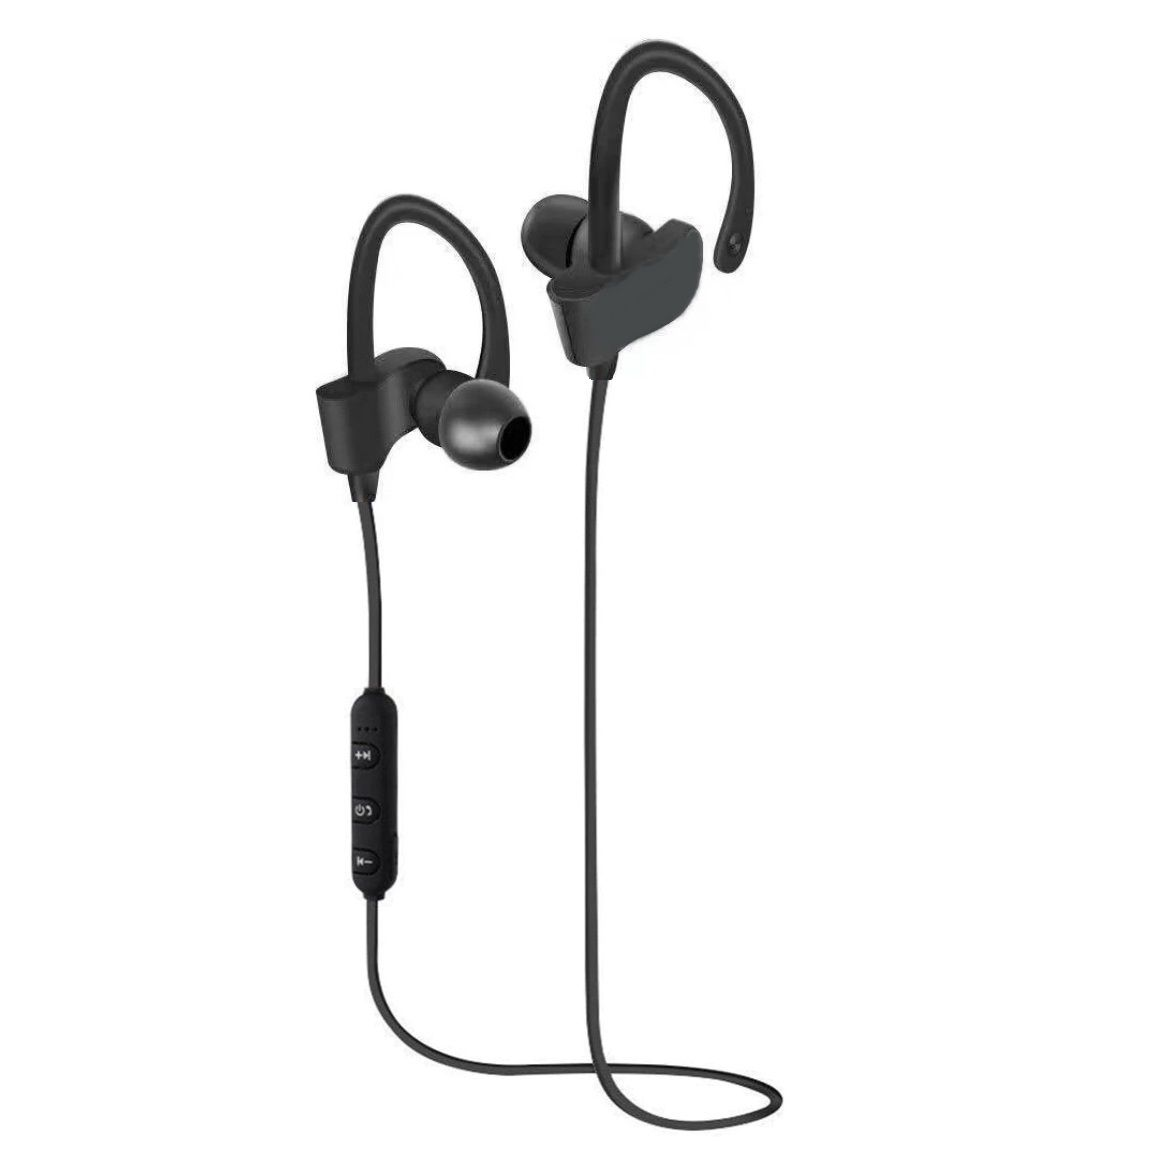 Freckle QC-10 Bluetooth Wireless Headphones Running,Gyming Headset With iOS Fast Charging and Data Sync USB Data Cable.